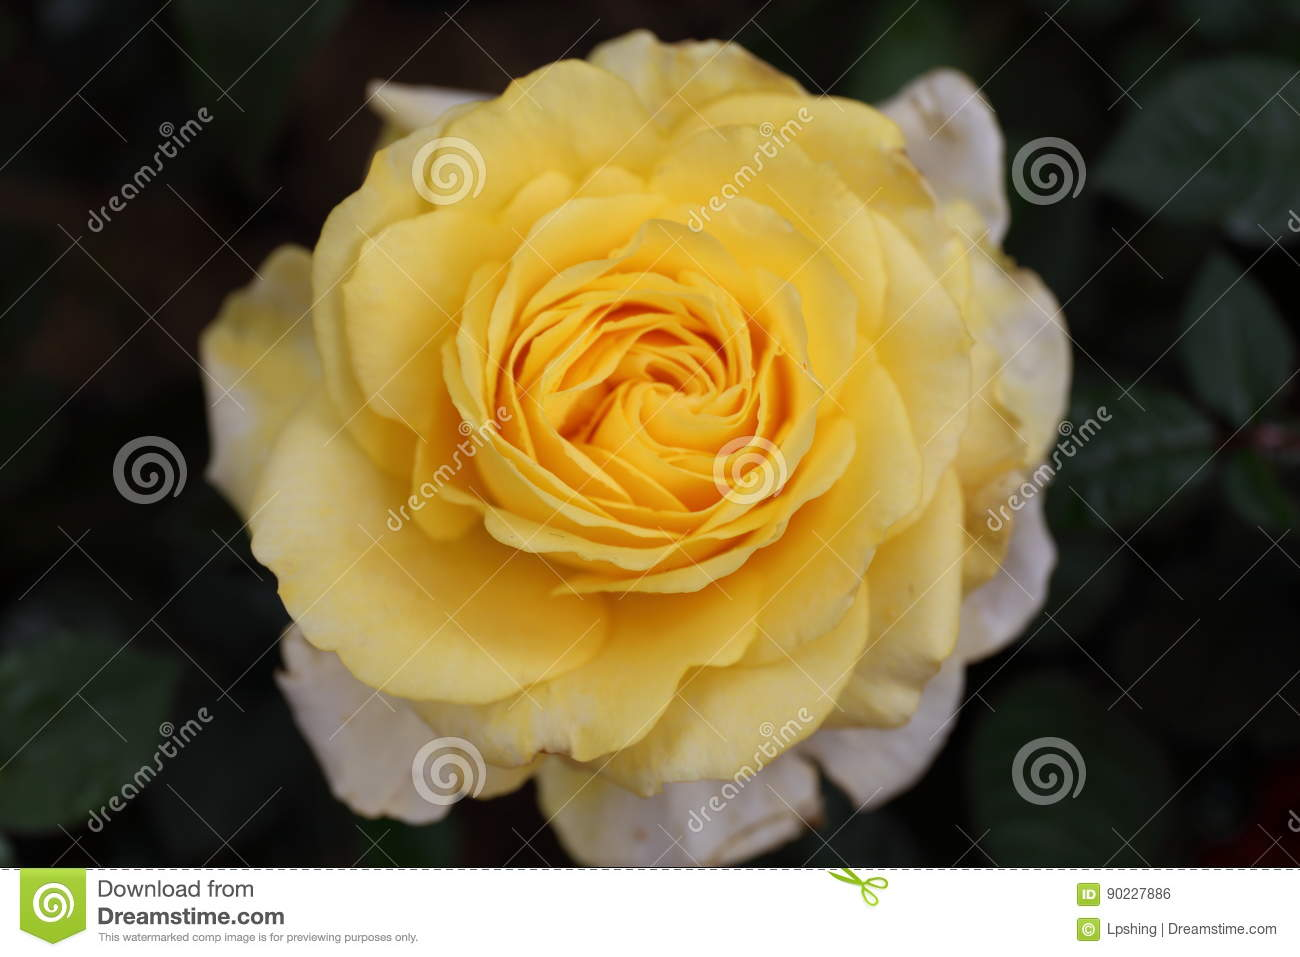 Yellow Rose In Garden Stock Photo Image Of Most Girls 90227886